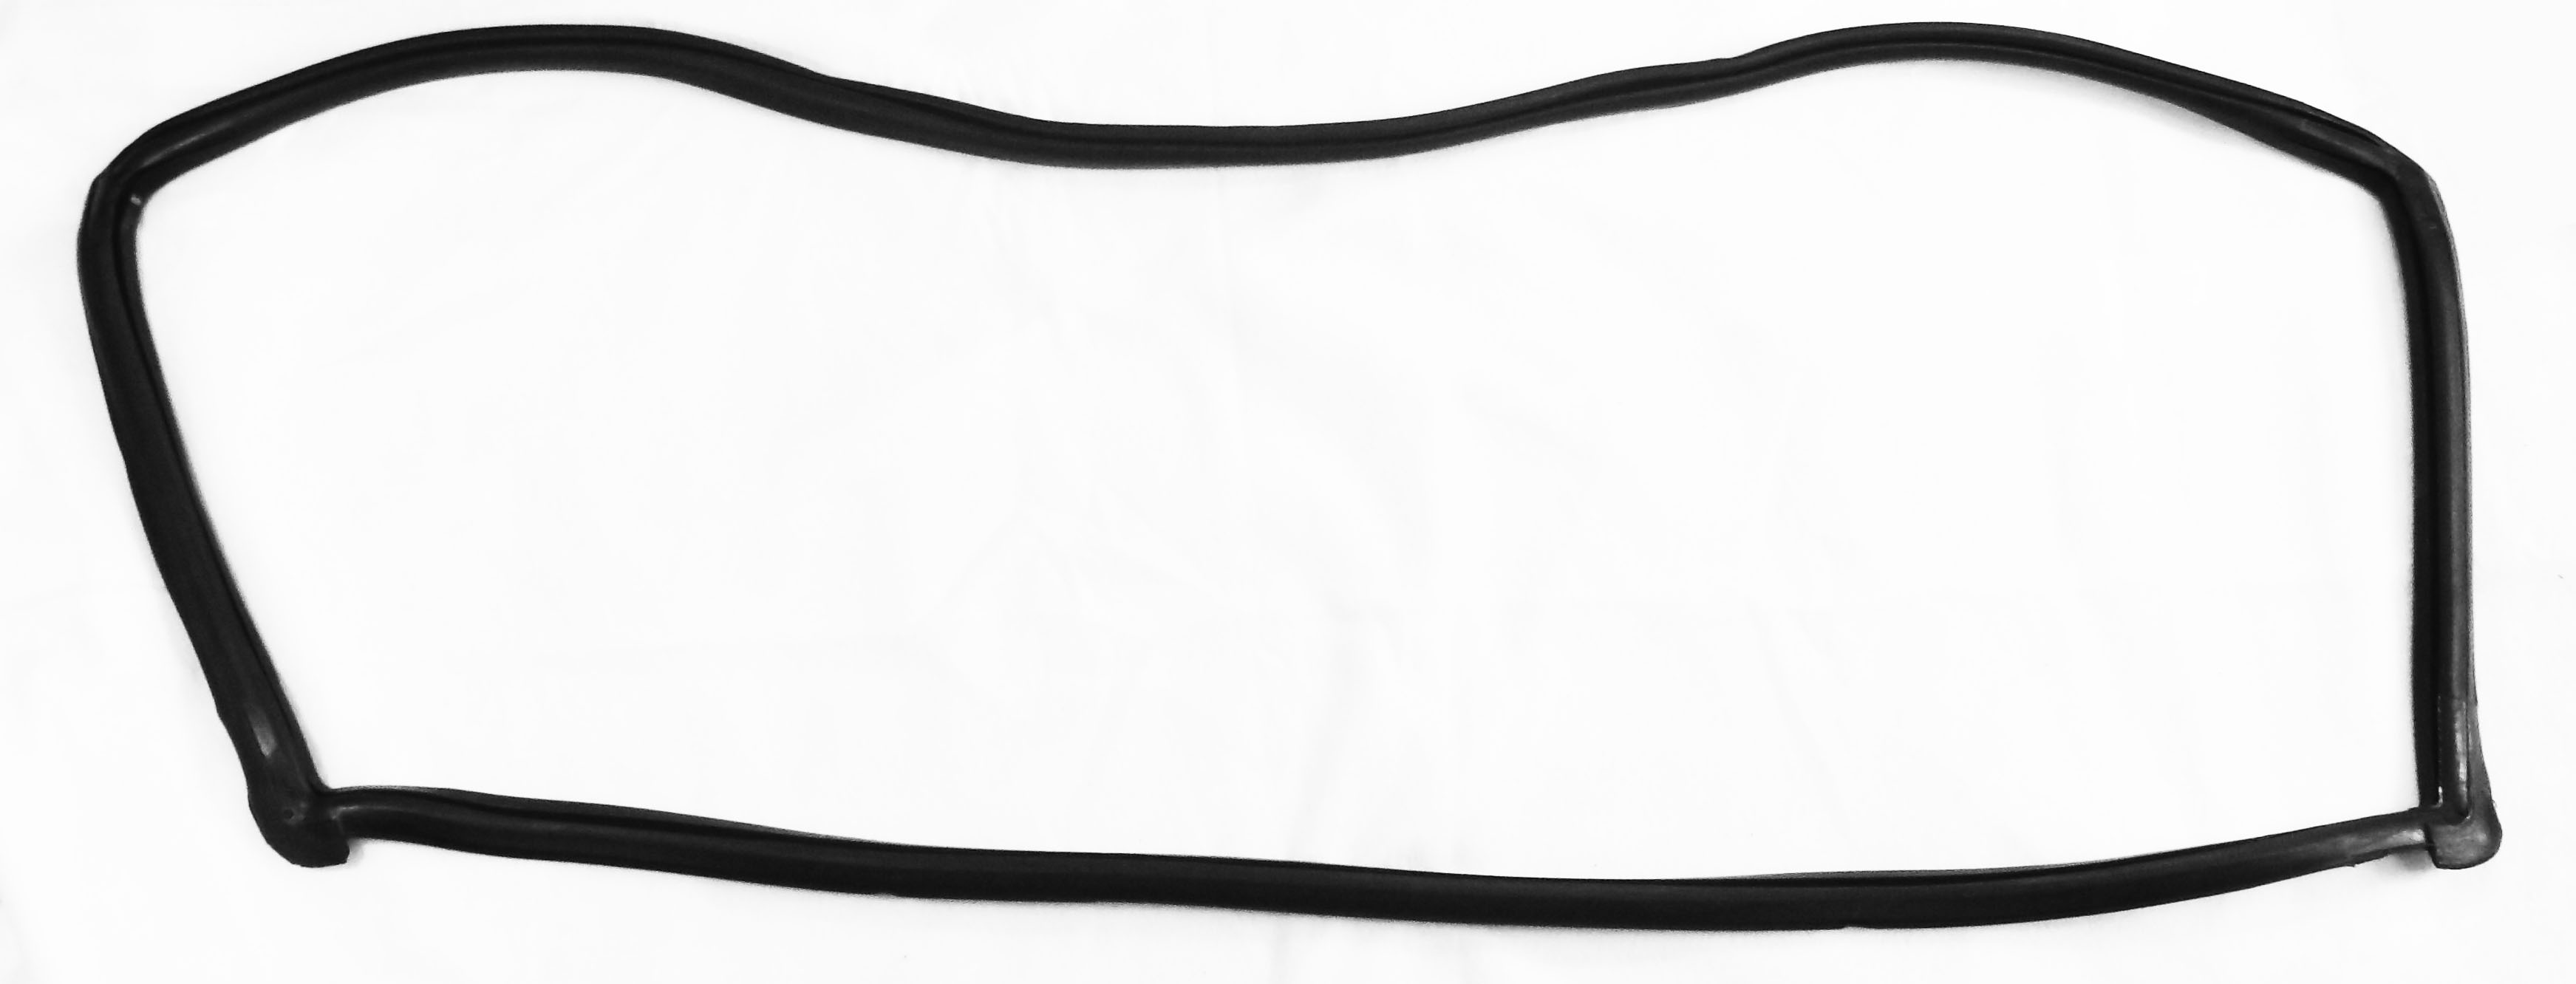 Windshield Channel For 1959-1960 Chevrolet Impala 2 Door.